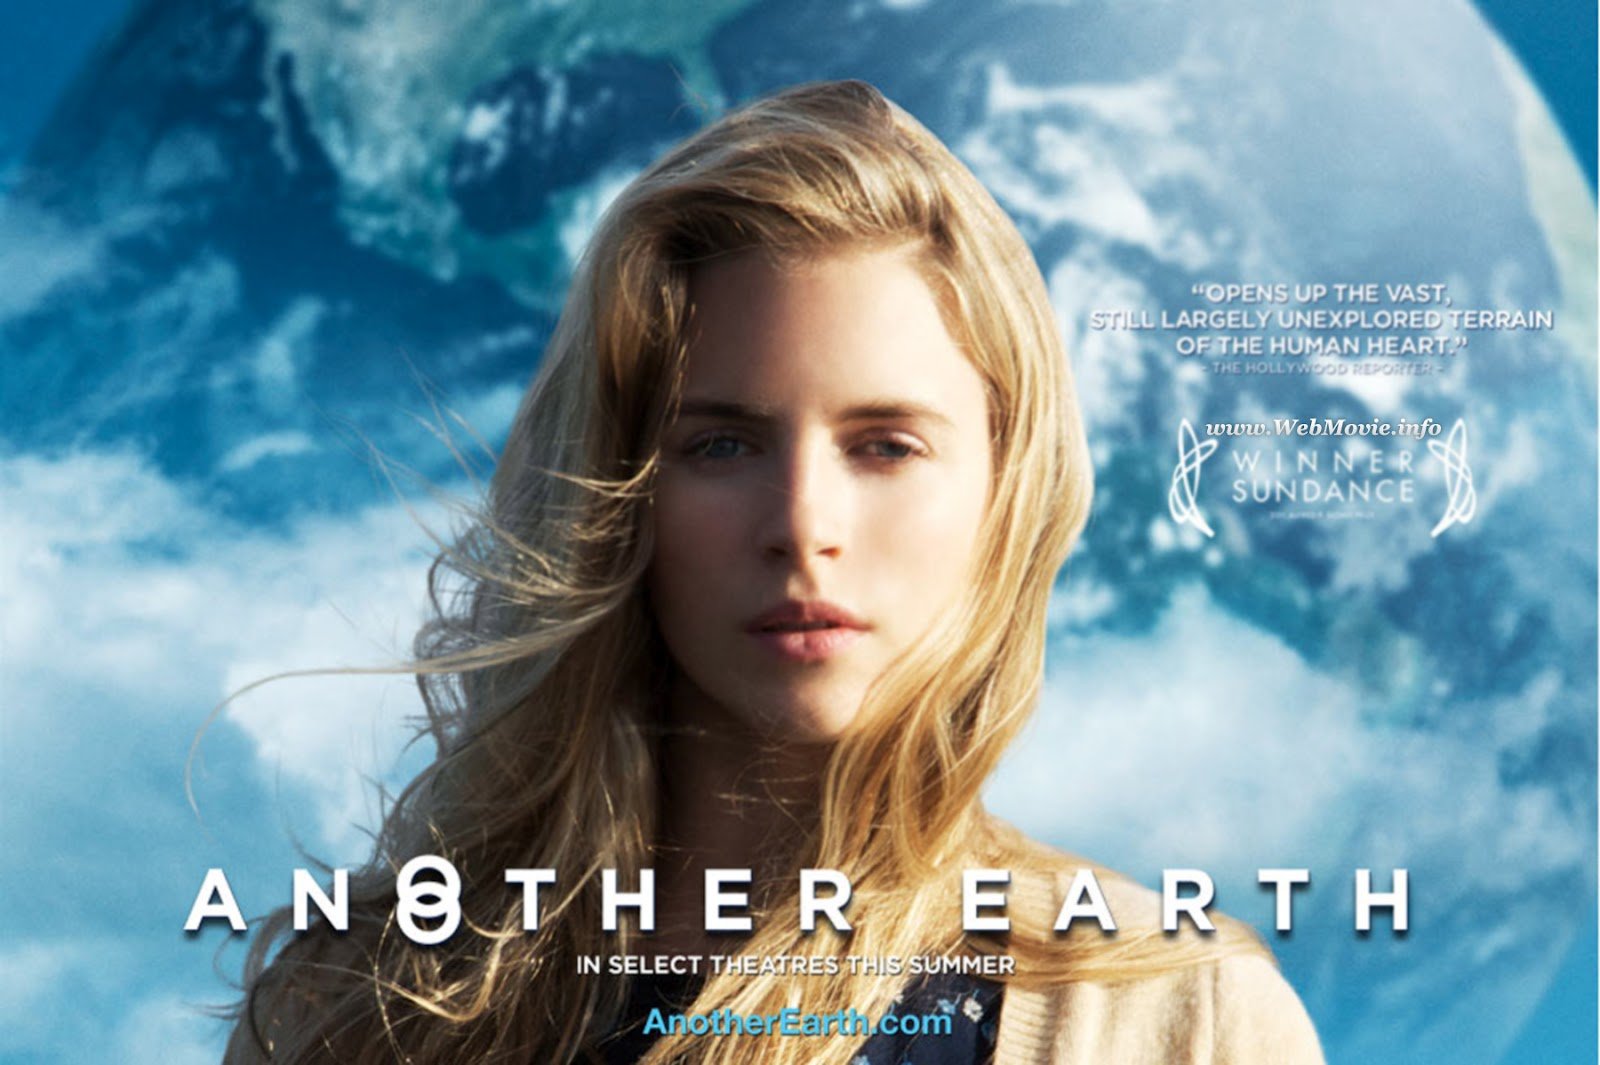 Another Earth. Te-ai muta pe un alt Pământ?